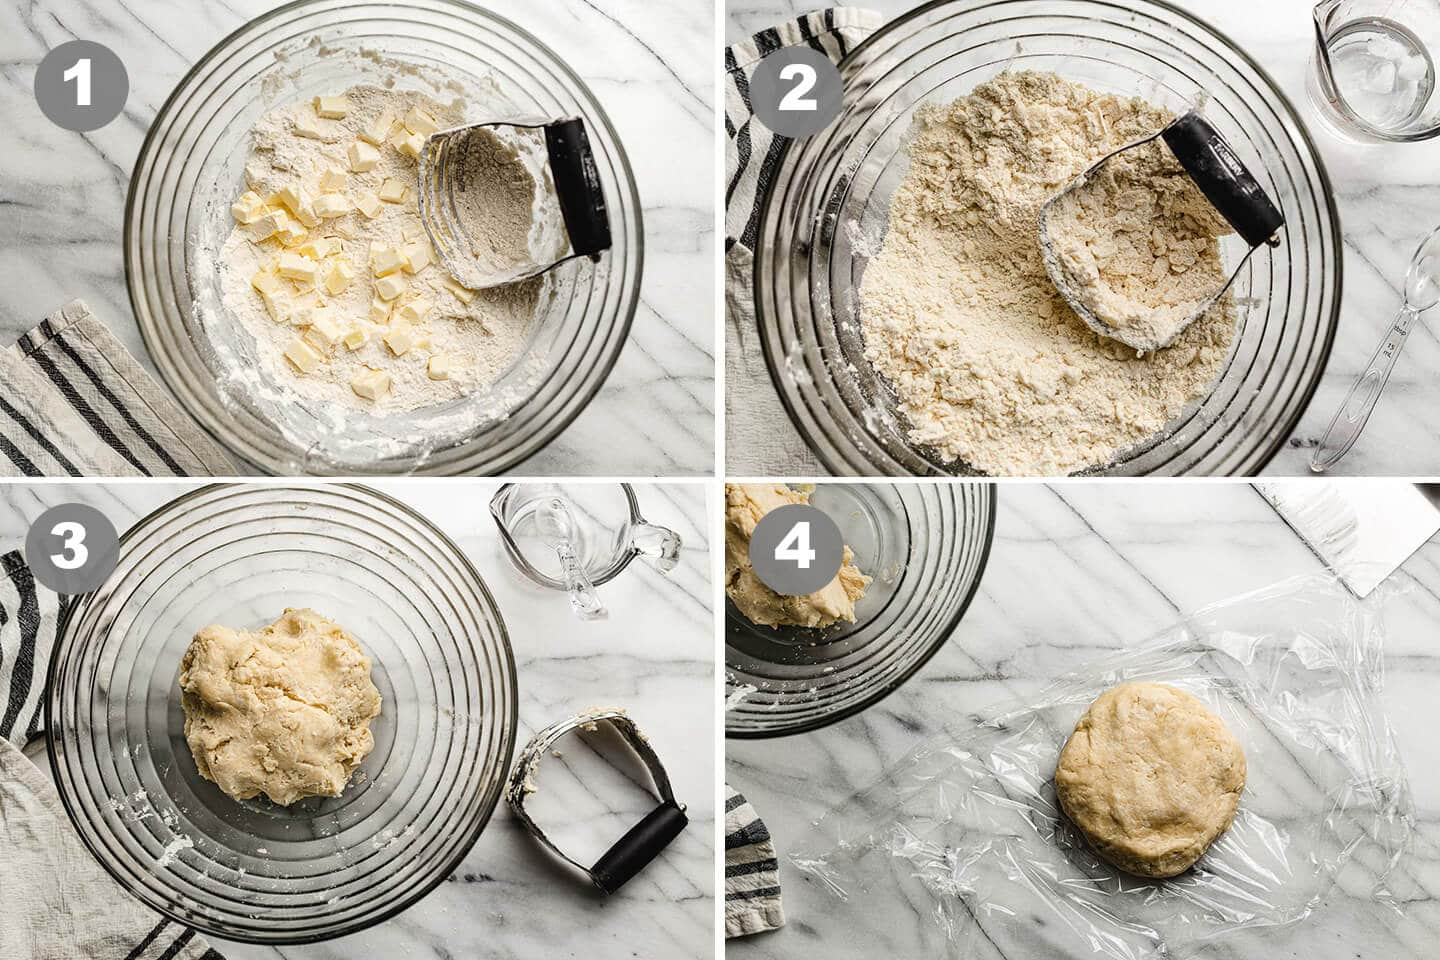 Four photos showing the steps needed to make pie crust.